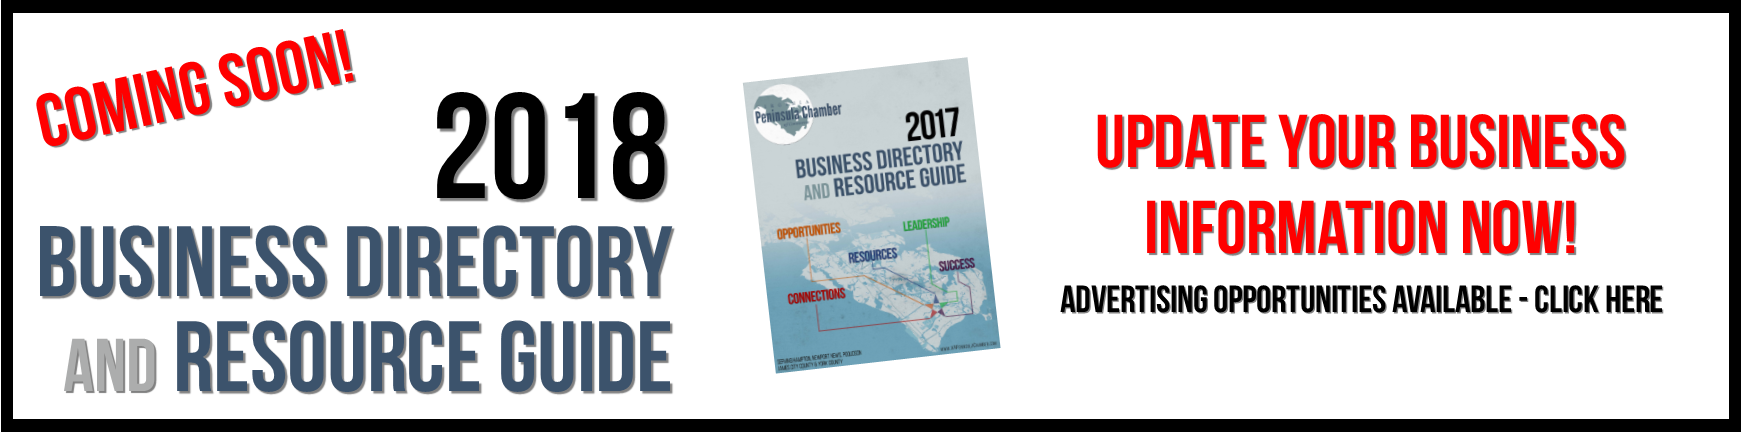 2018-Business-Directory-and-Resource-Guide-Banner.png